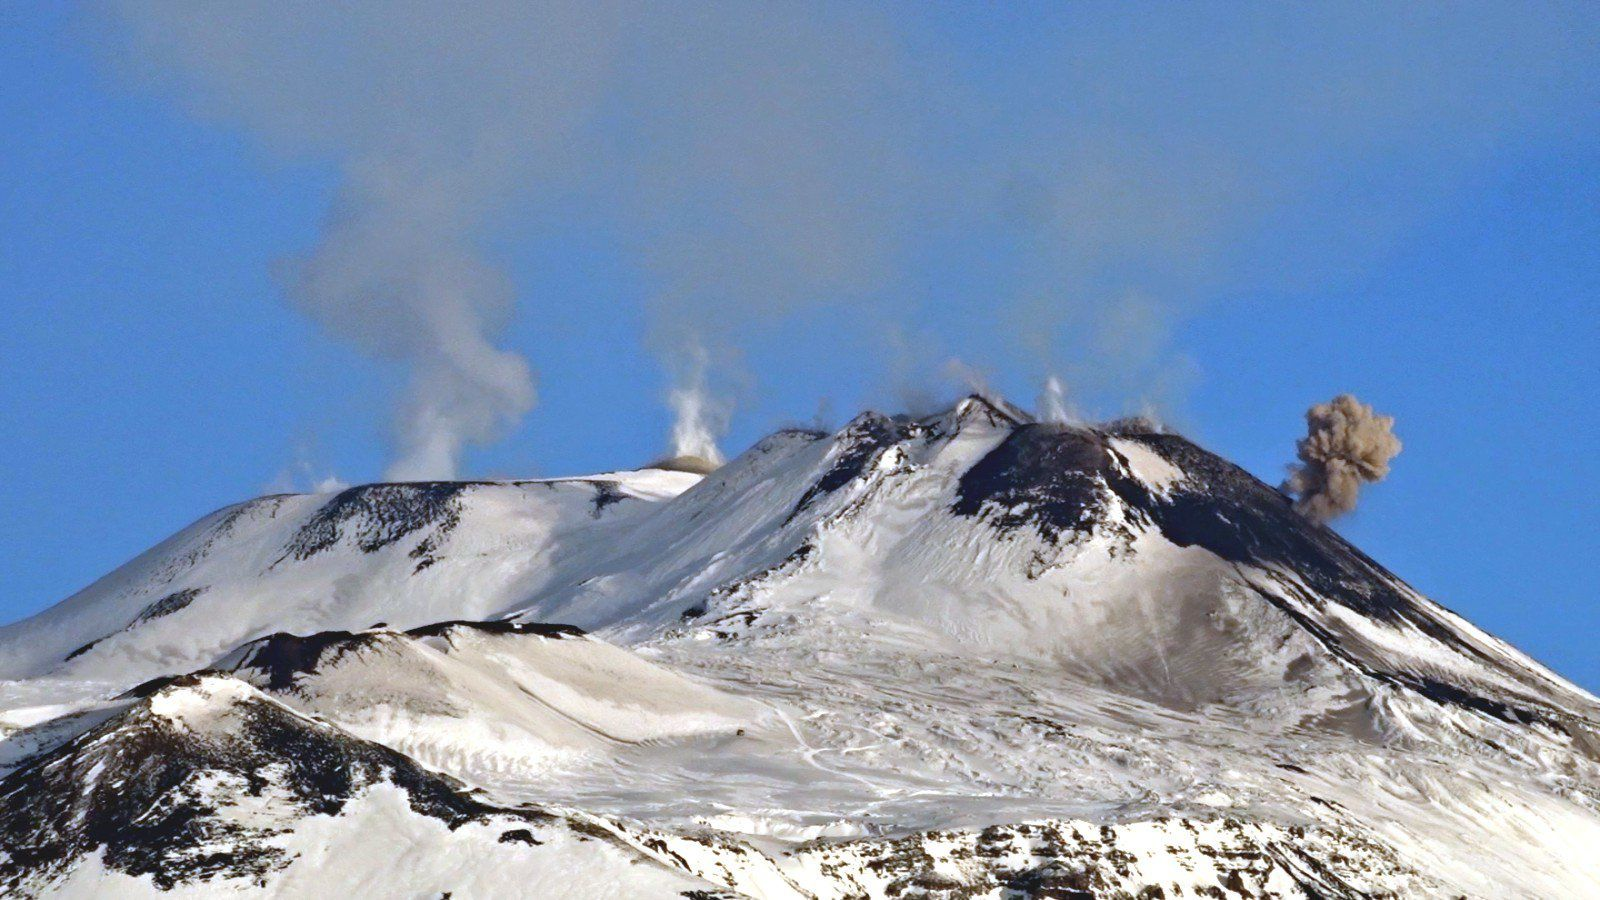 Etna - 17.02.2018 / 09h00 - émission de cendres - photo Boris Behncke